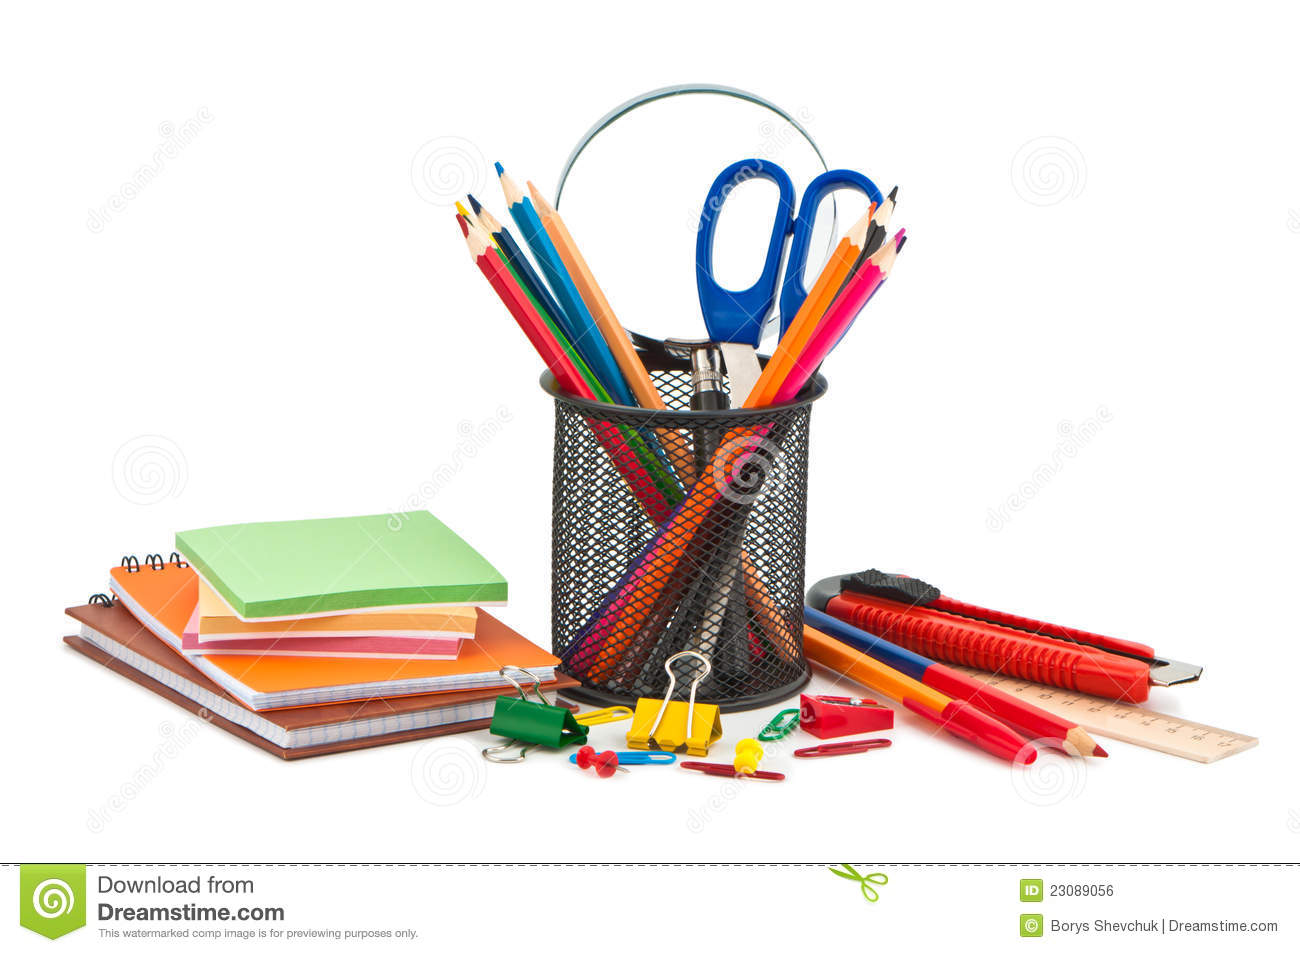 Miscellaneous office supplies royalty free stock image for Free online office design tool